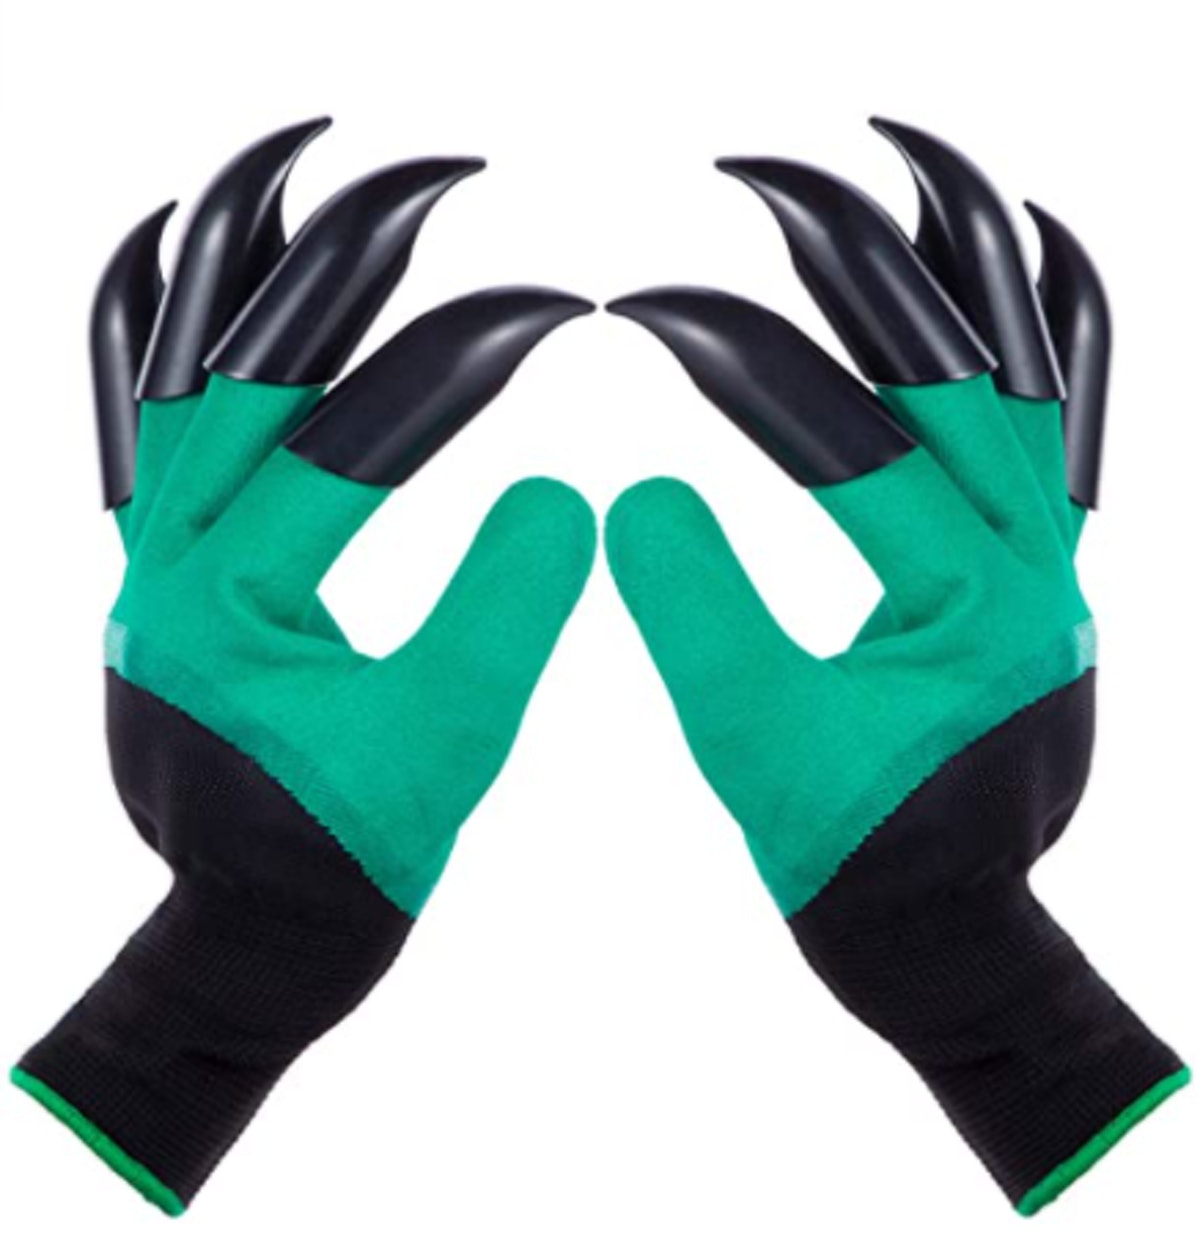 AIRMARCH Garden Gloves with Claws